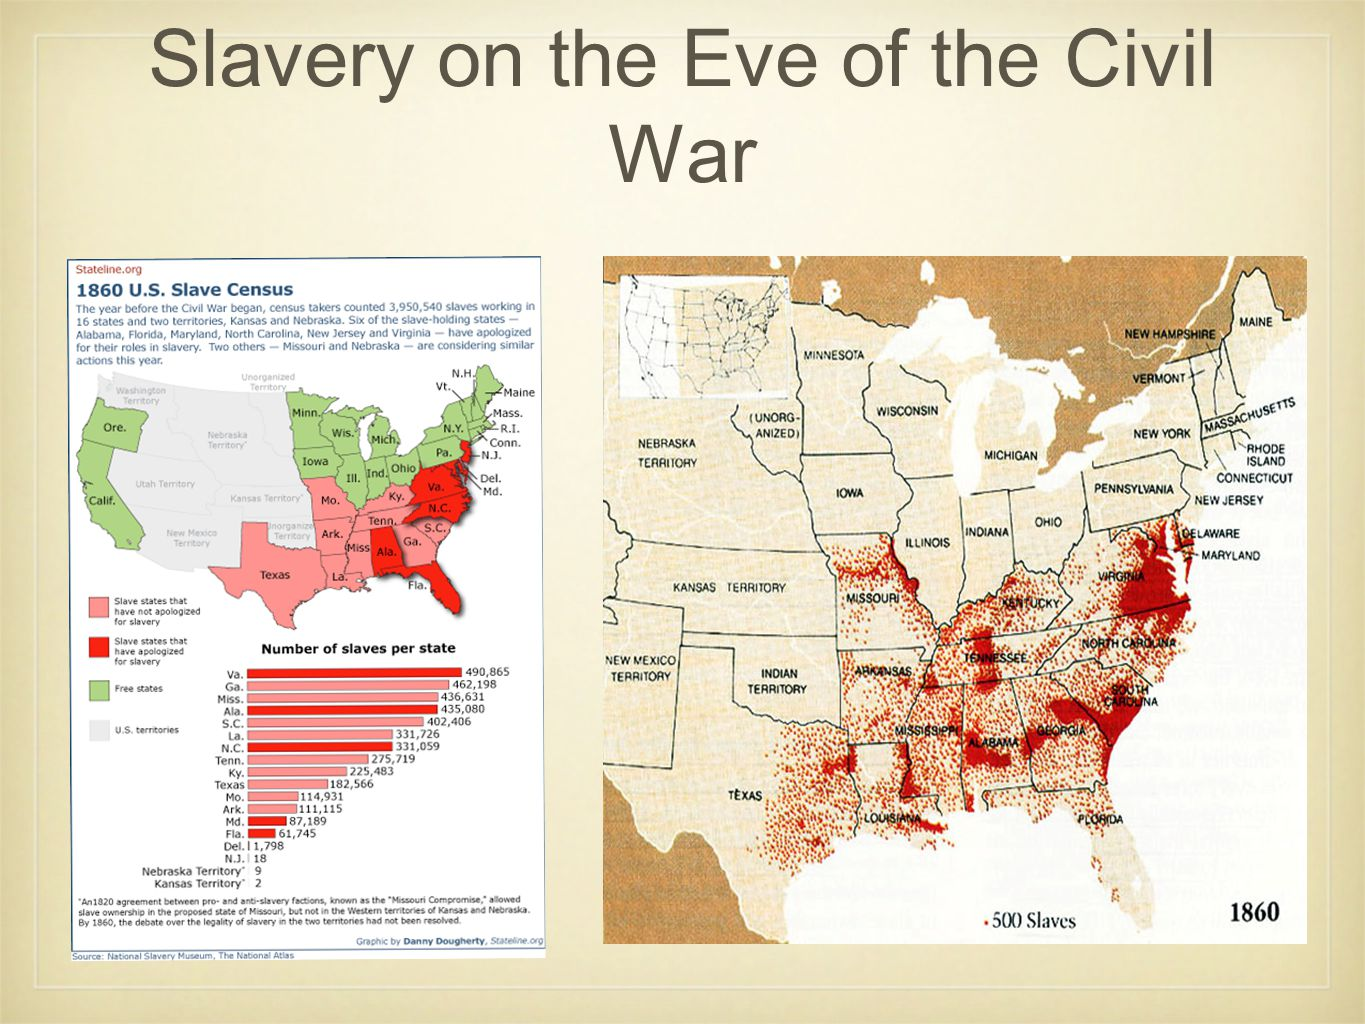 Slavery on the Eve of the Civil War